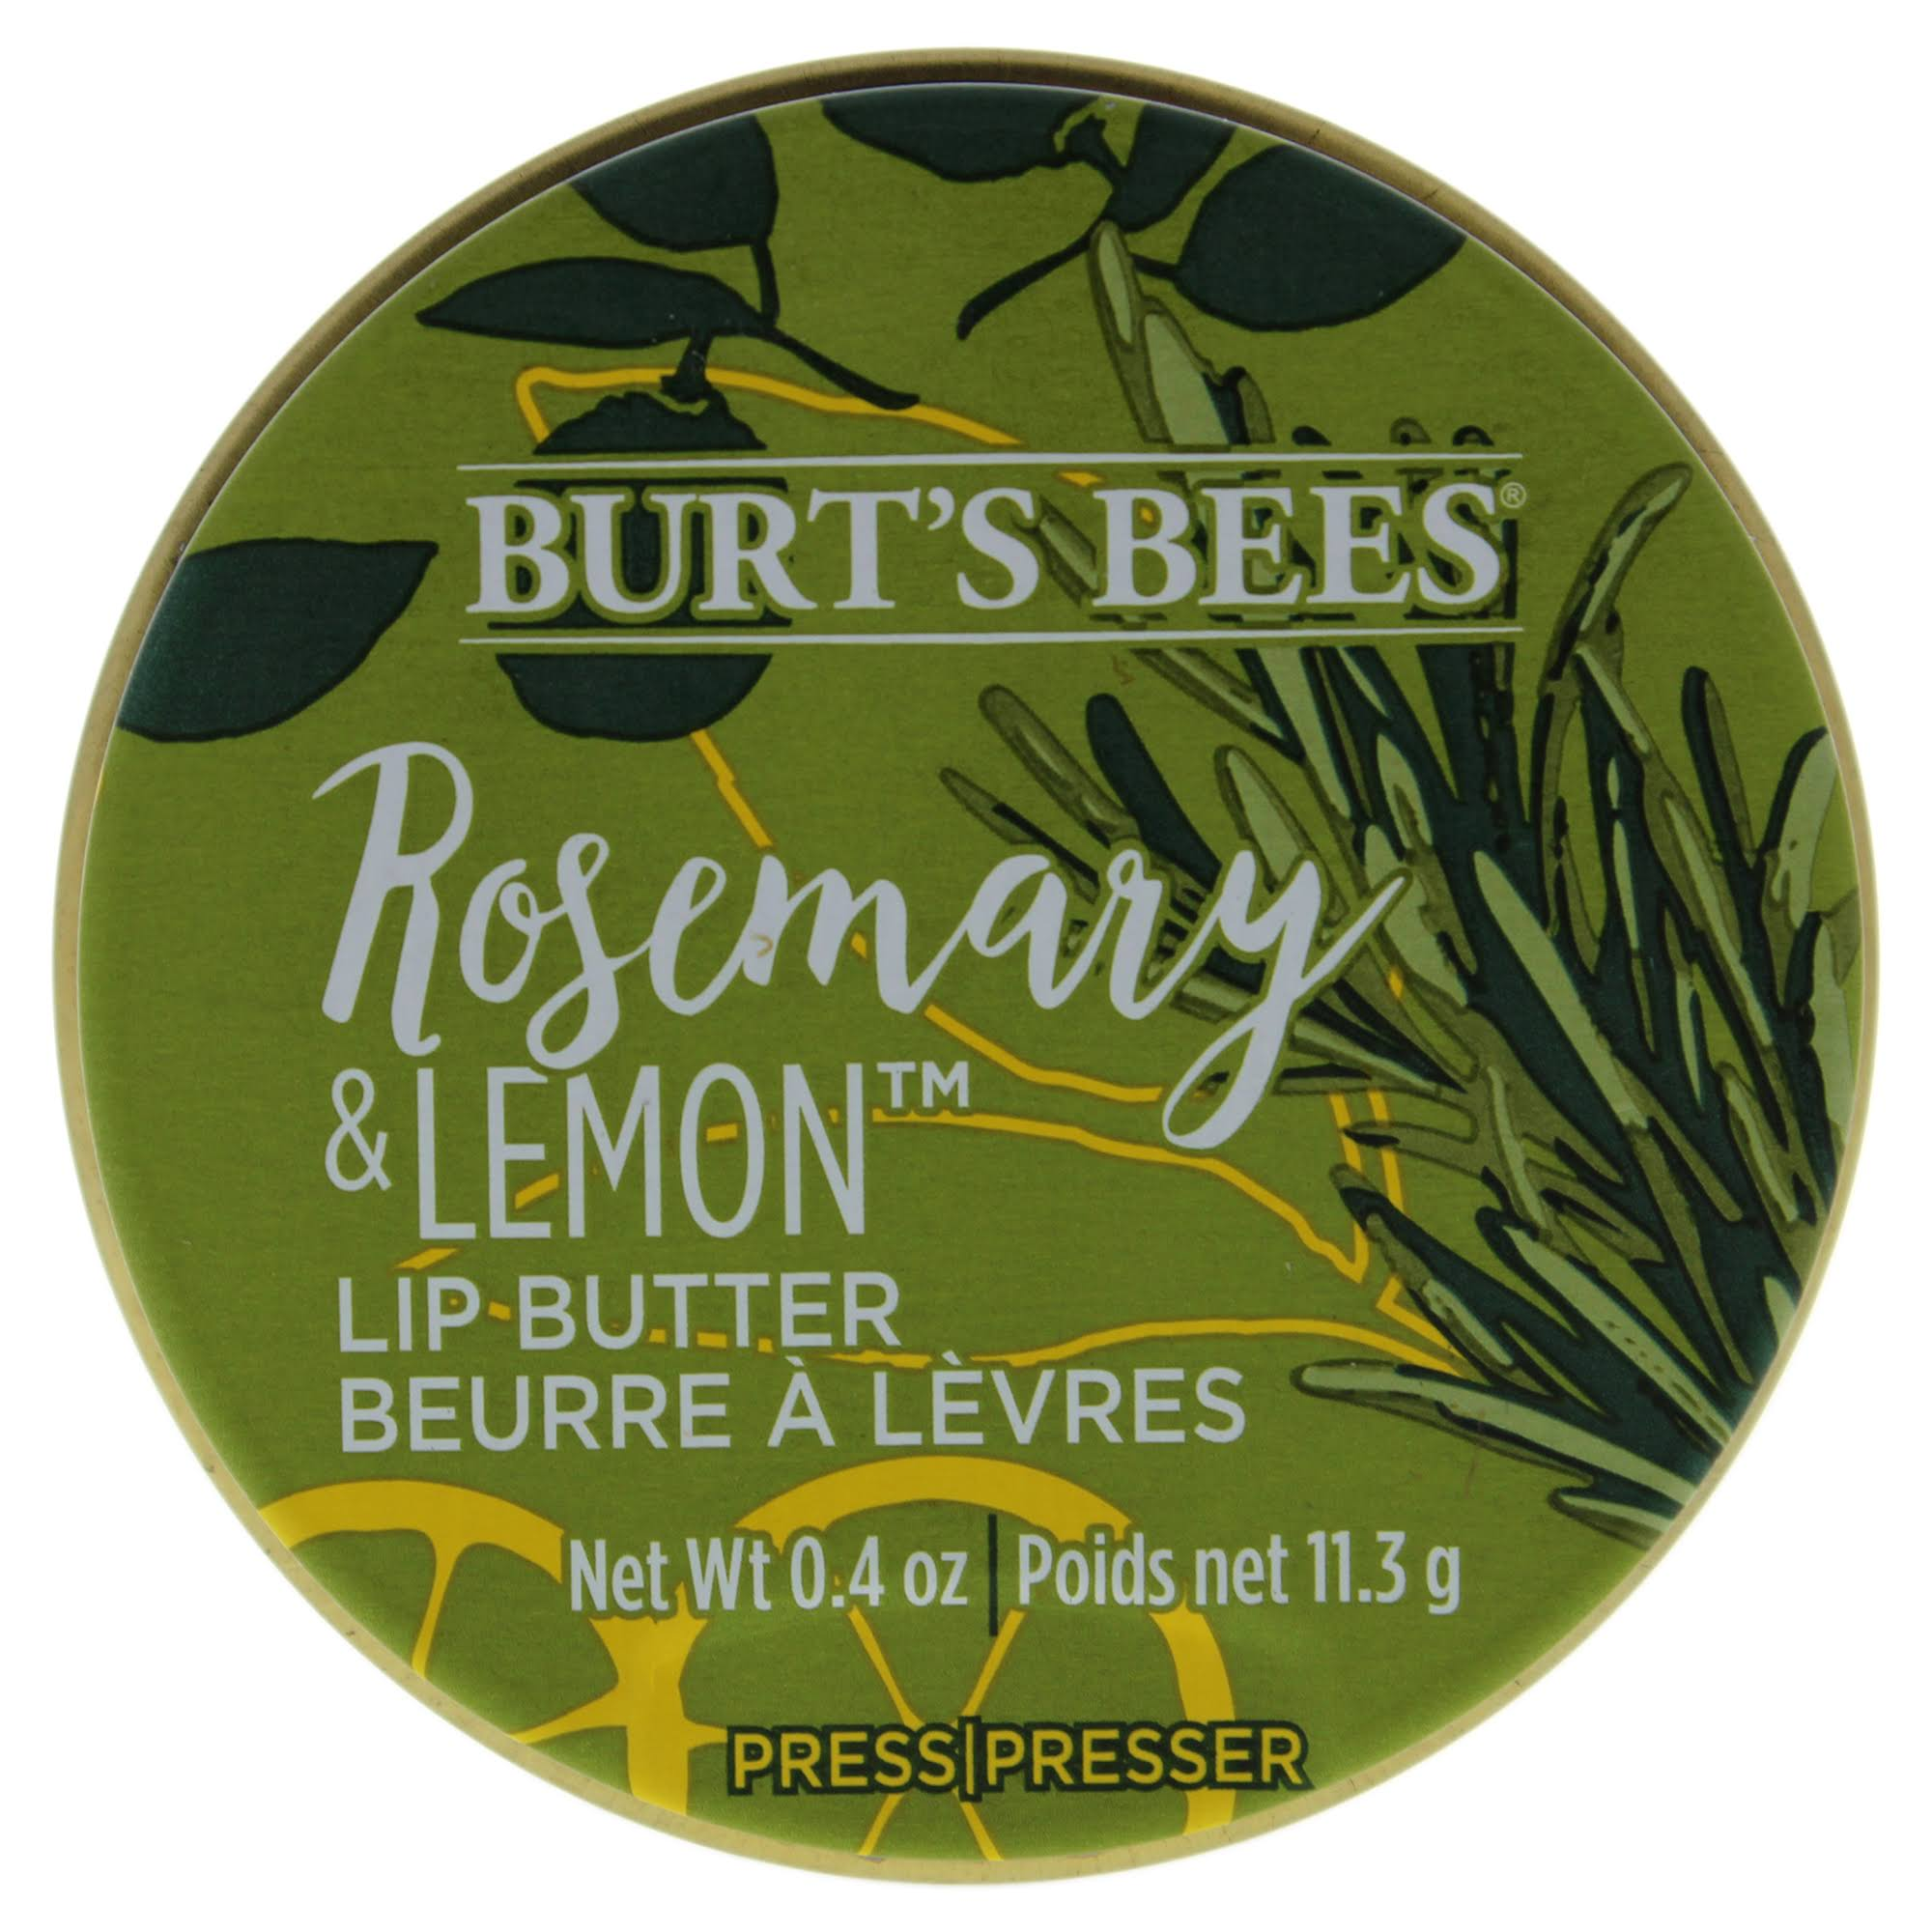 Burt's Bees Lip Butter - Rosemary & Lemon 0.4oz